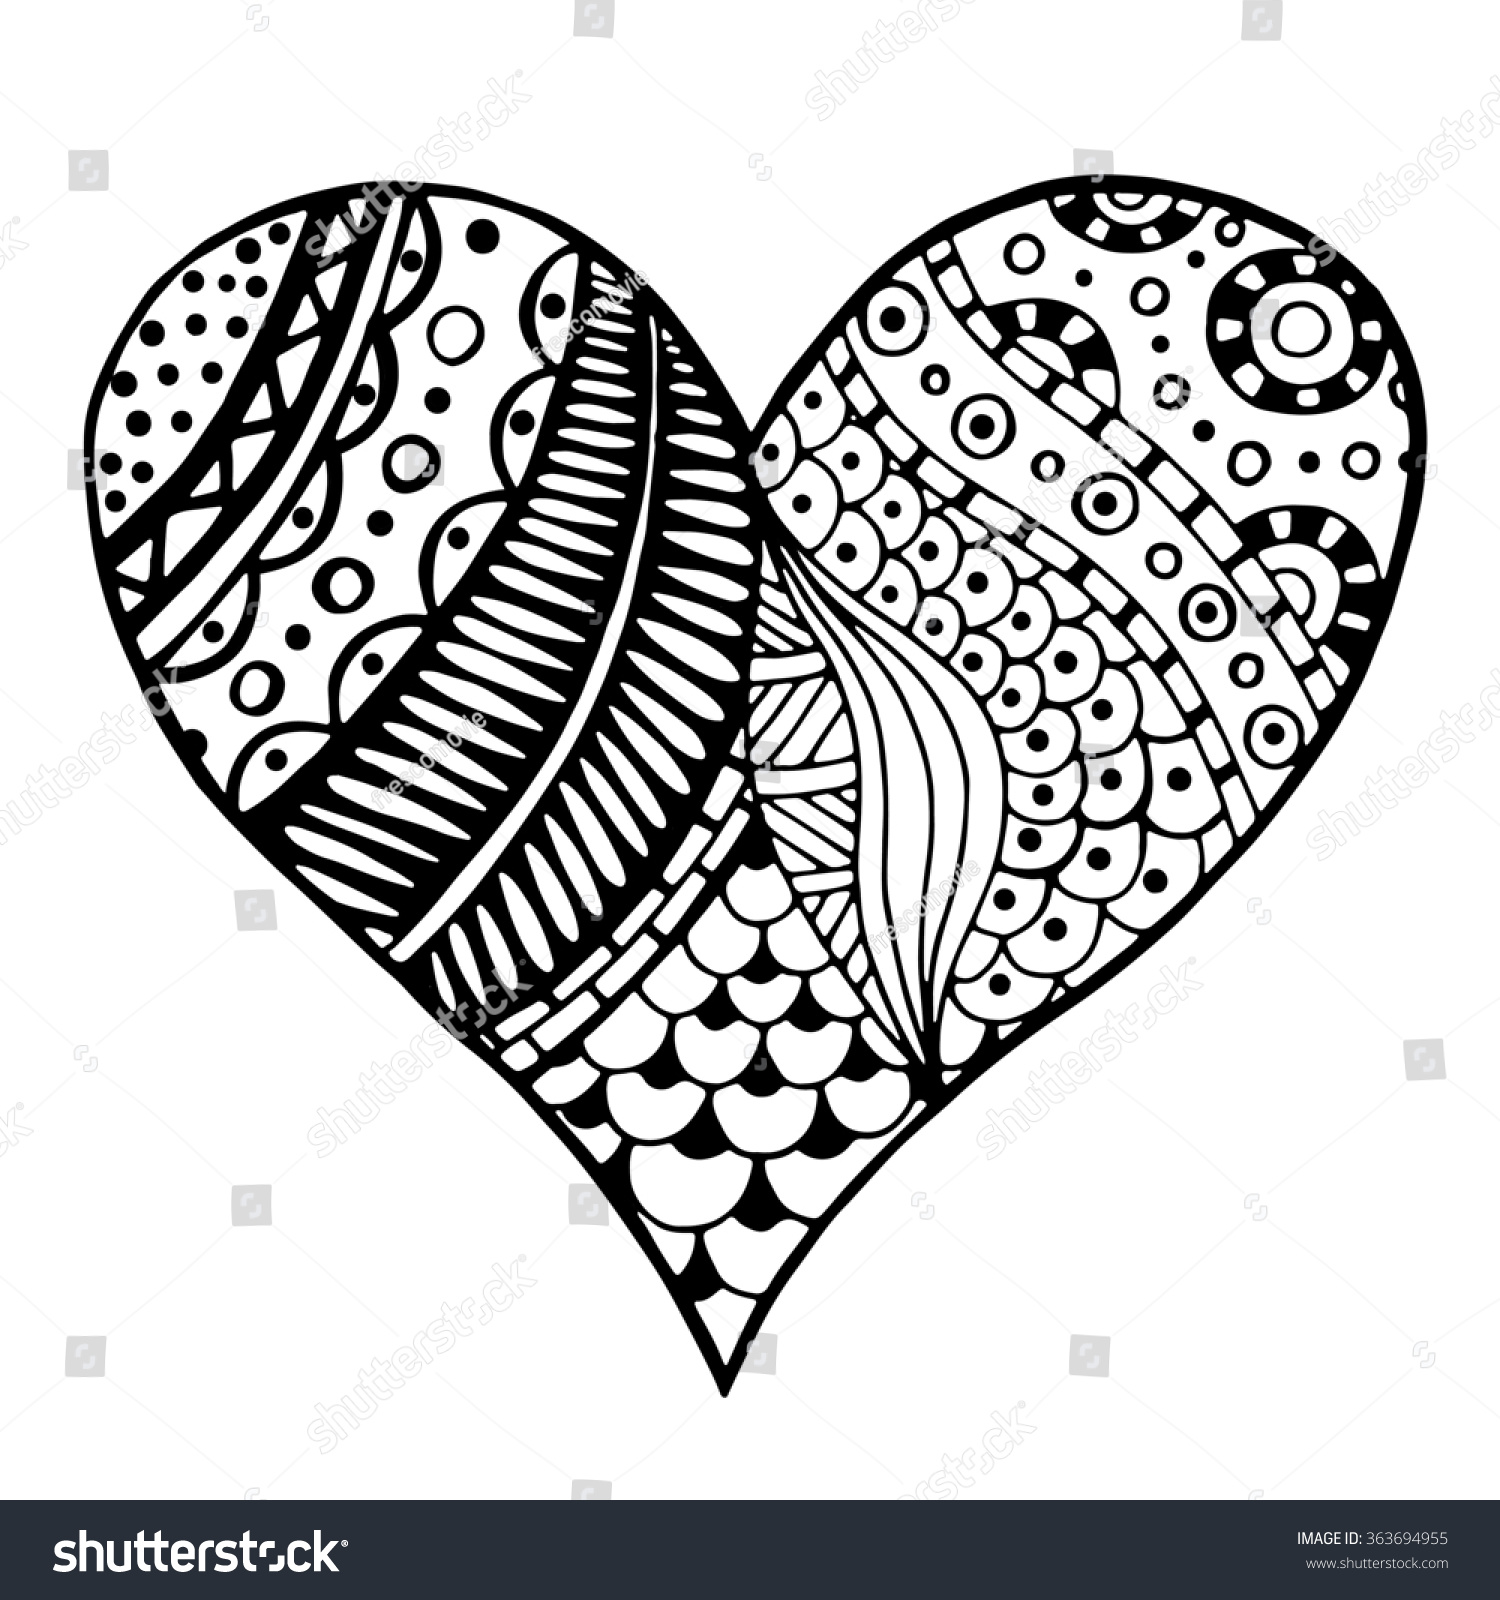 heart zentangle coloring pages - photo#36